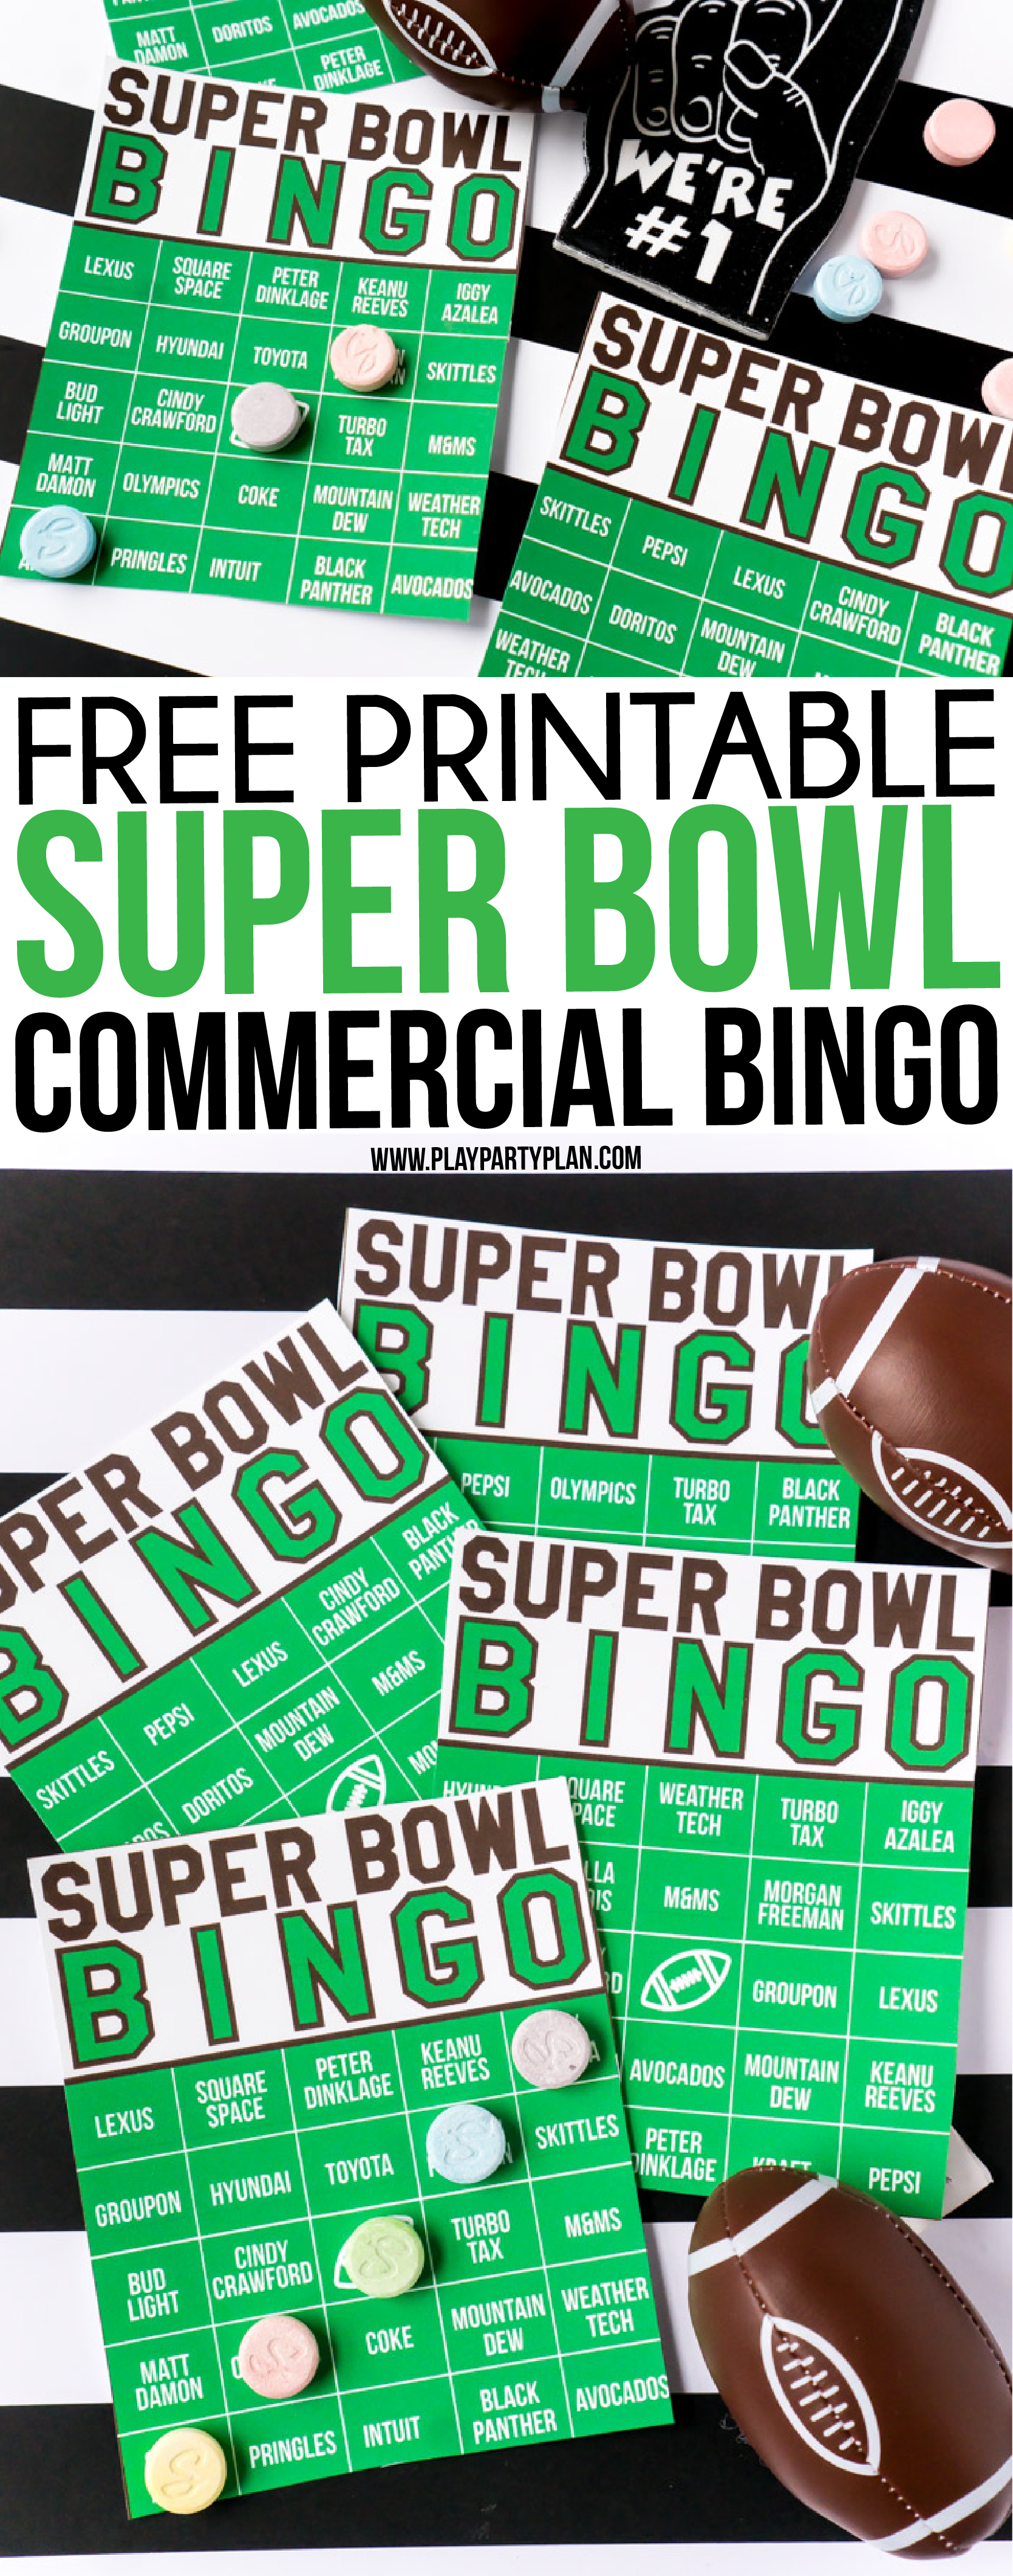 These Super Bowl commercial bingo cards are one of the best Super Bowl party games ever! Just print out the printables, hand out on Super Bowl Sunday, watch the funny (and not so funny commercials) and plays! One of our favorite Super Bowl party ideas!